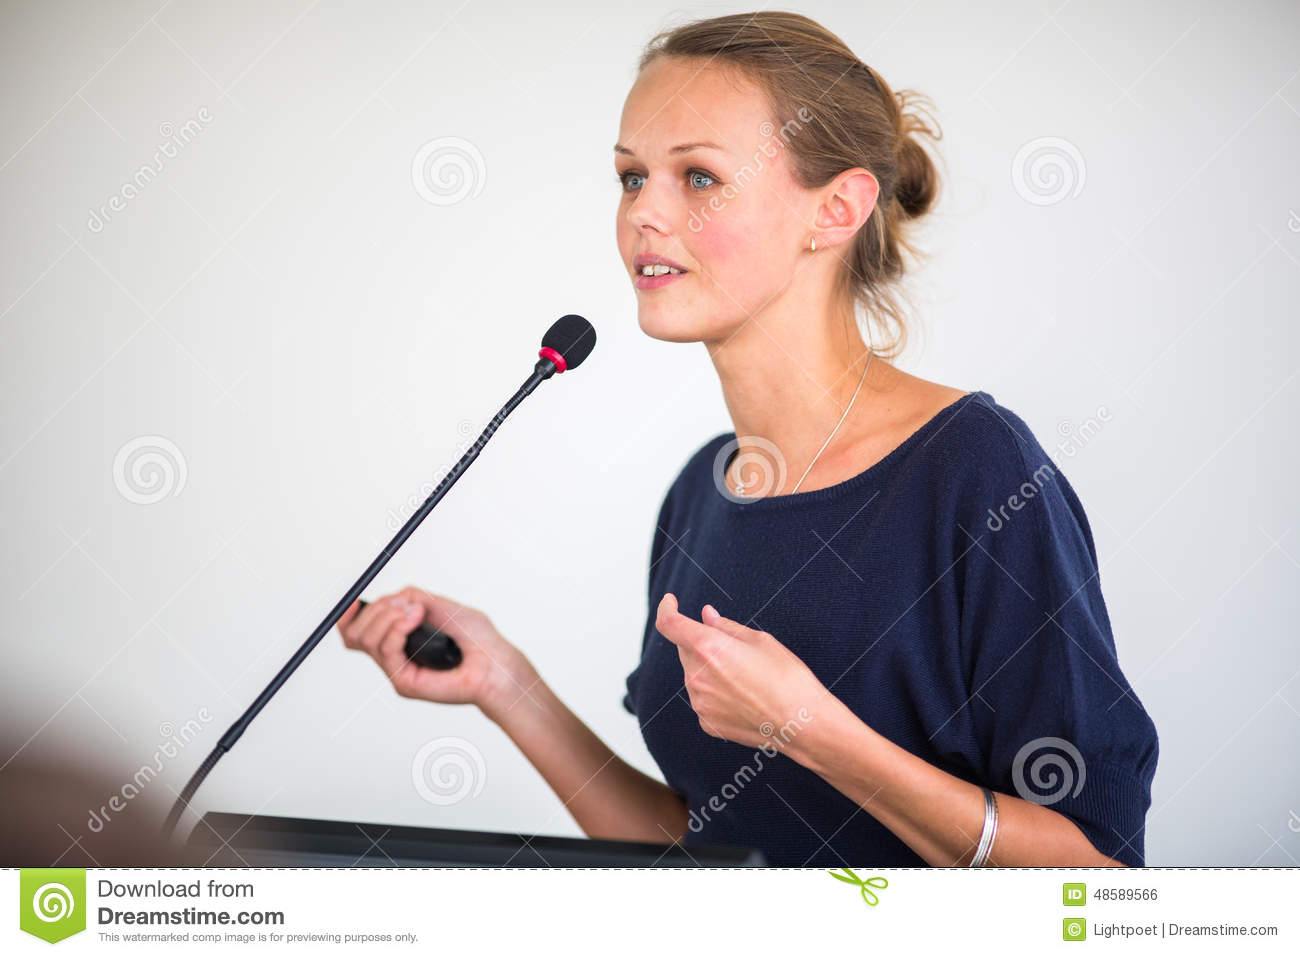 pretty-young-business-woman-giving-presentation-conference-meeting-setting-shallow-dof-color-toned-image-48589566.jpg